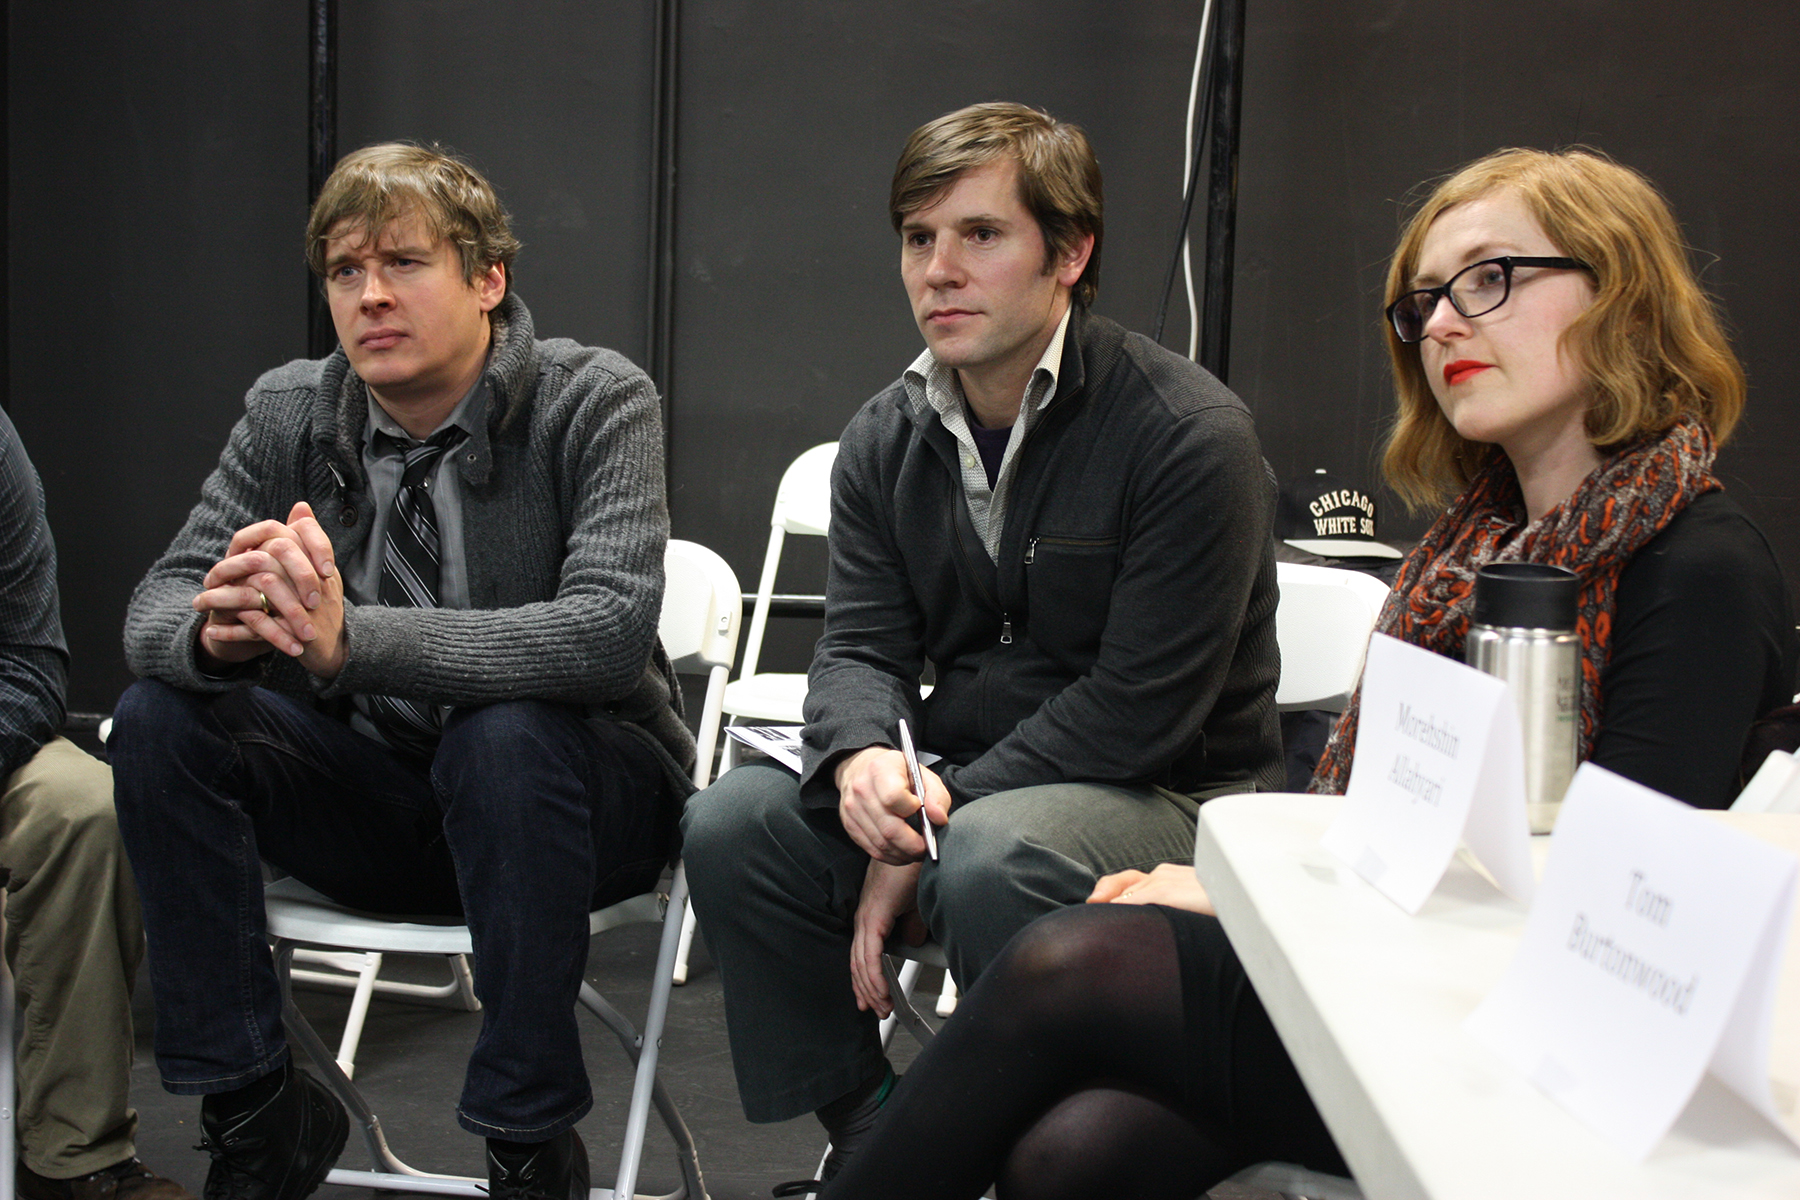 3D Printing Roundtable Discussion: Discussion breakout group led by (L to R) Jamie Obermeier, Tom Lauerman, and Sophie Kahn, 2014. ©Rachel Clarke. (Used with permission.)